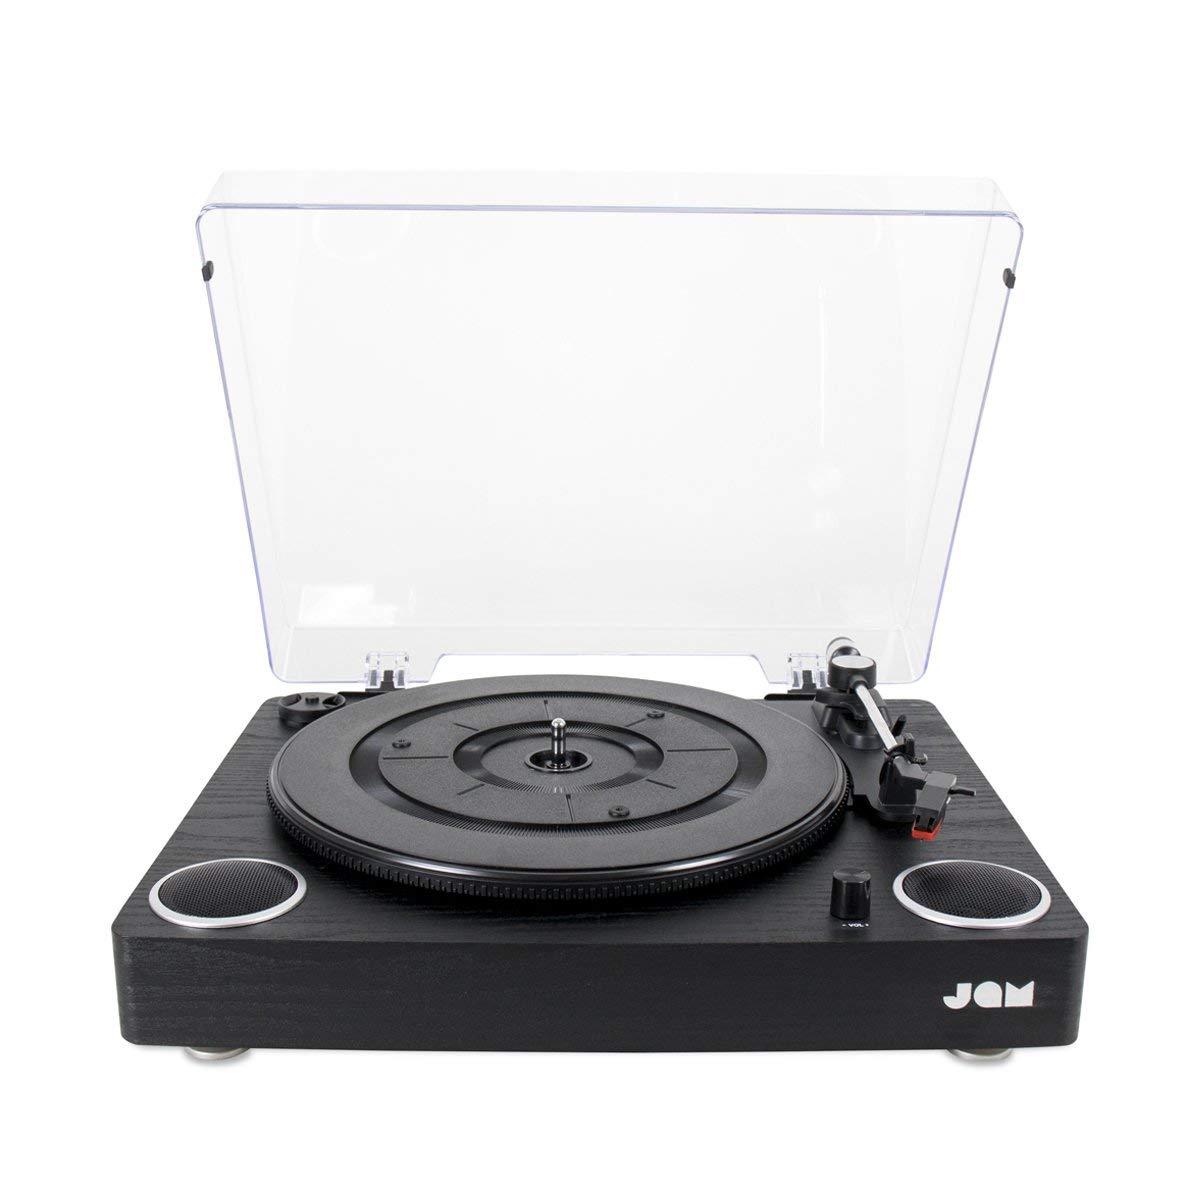 Jam Play record player